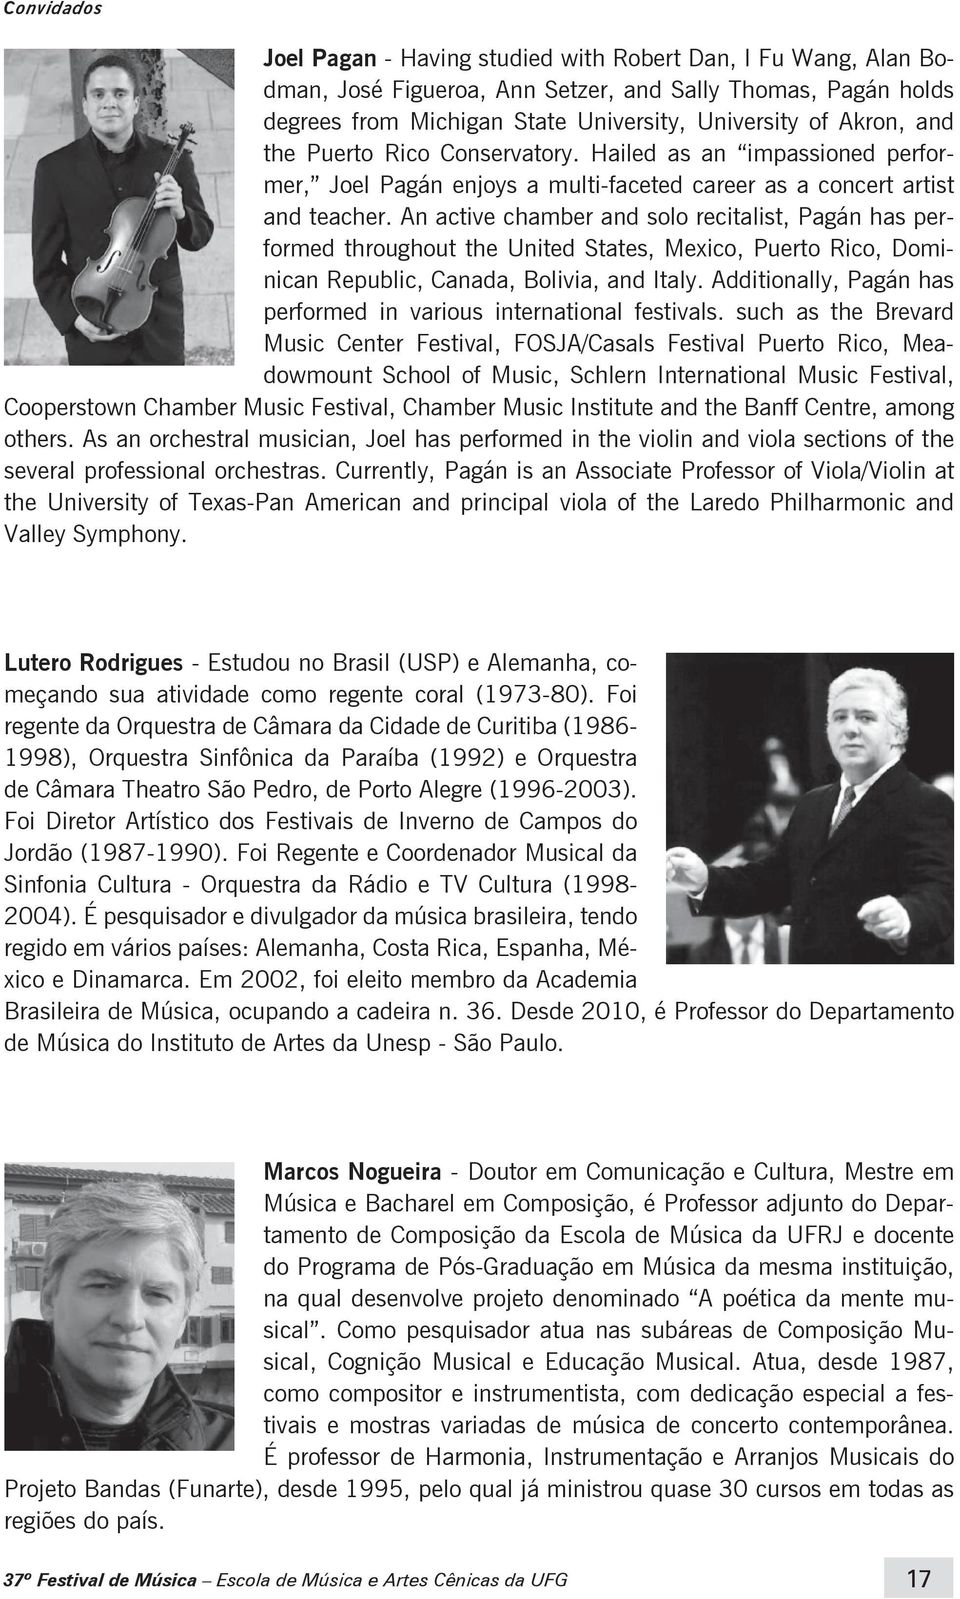 An active chamber and solo recitalist, Pagán has performed throughout the United States, Mexico, Puerto Rico, Dominican Republic, Canada, Bolivia, and Italy.